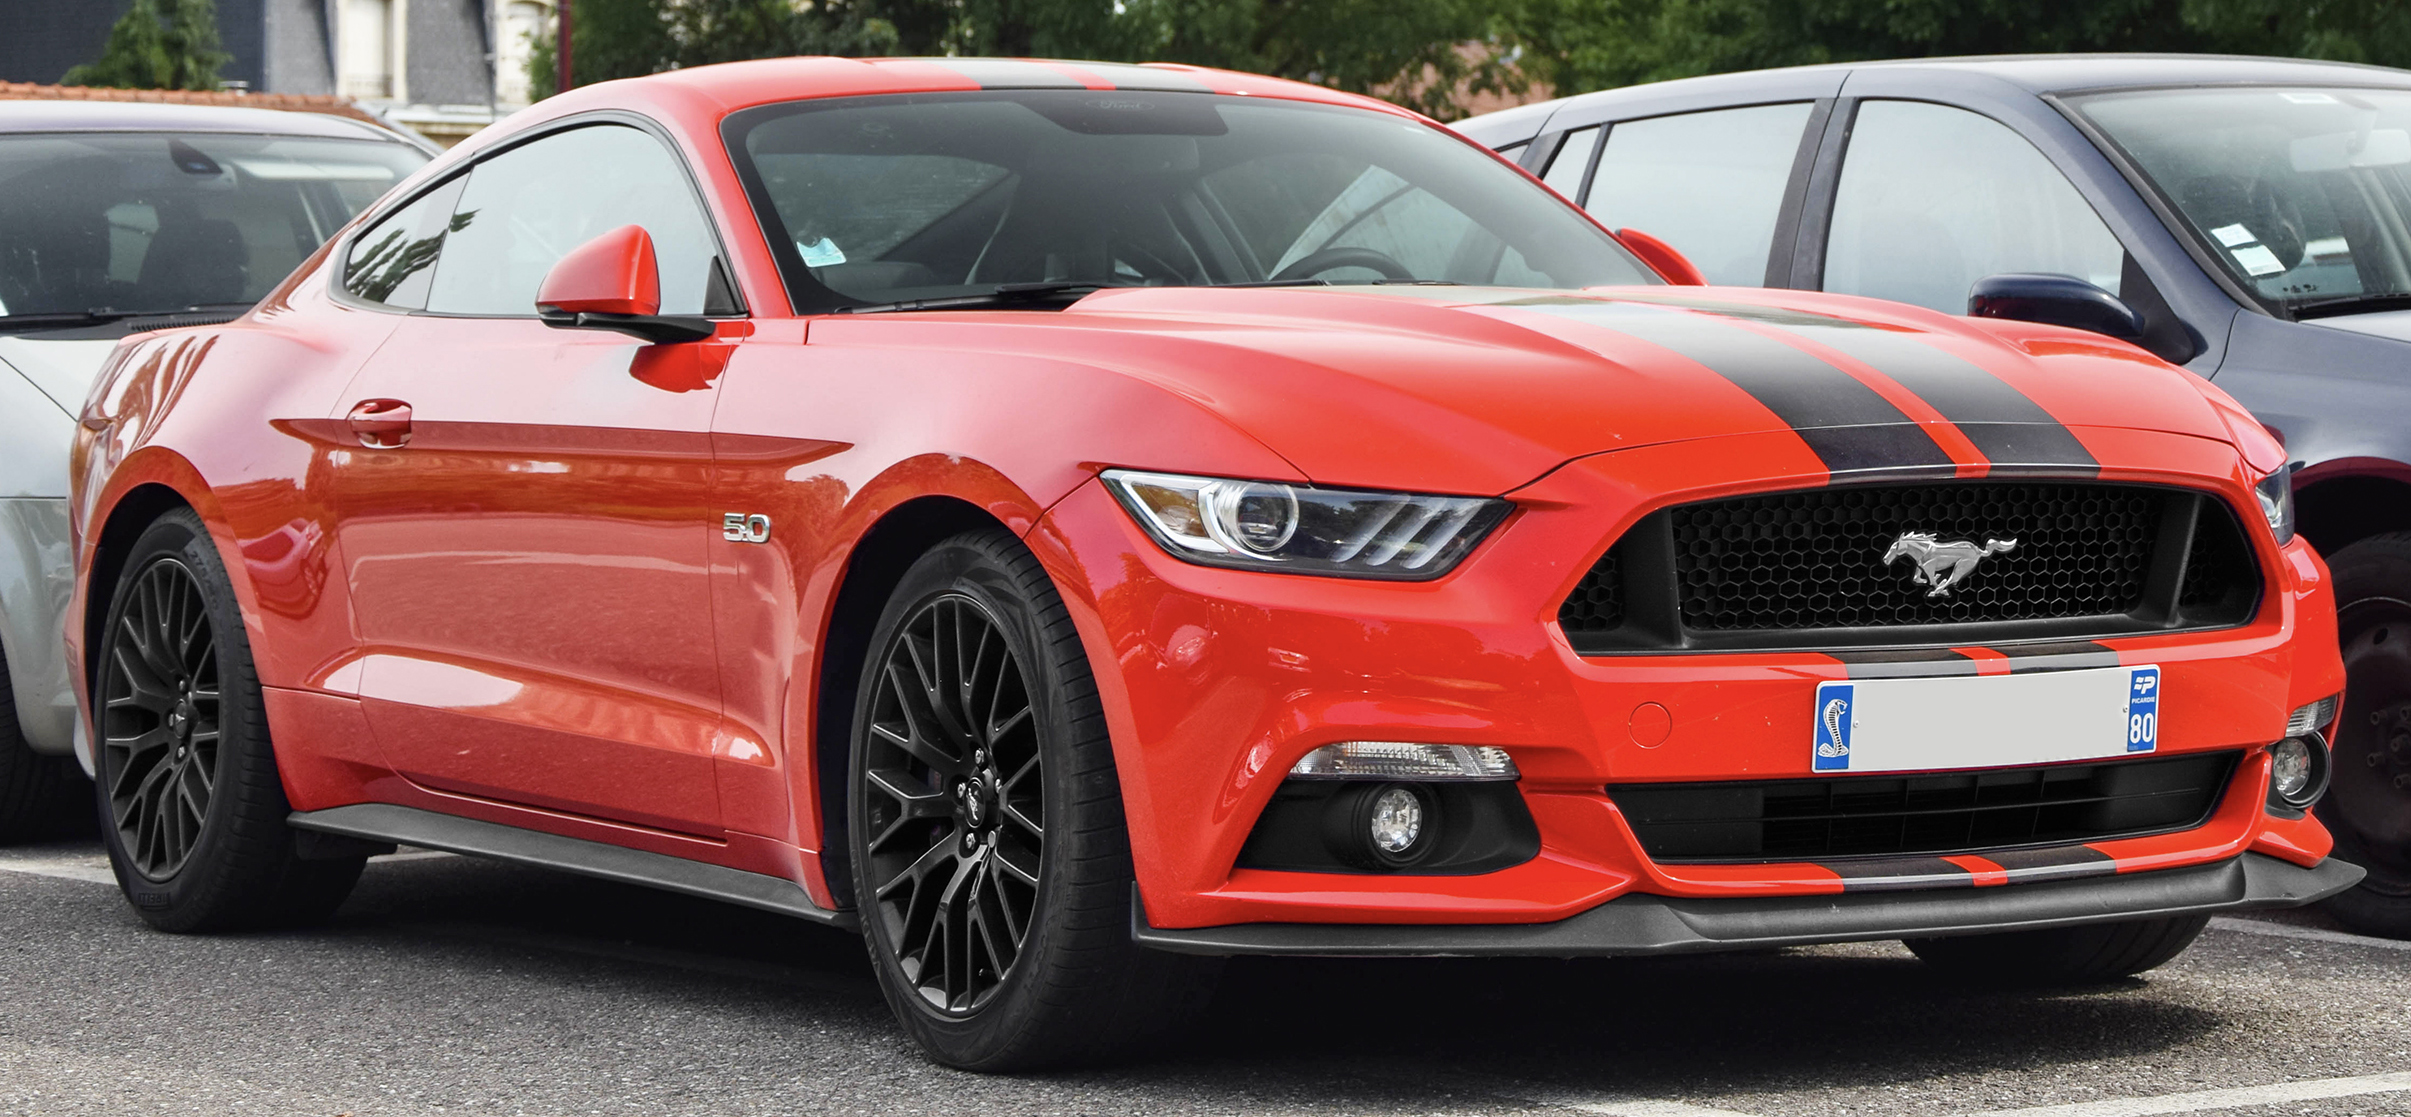 Fileford mustang gt red 50 jpg